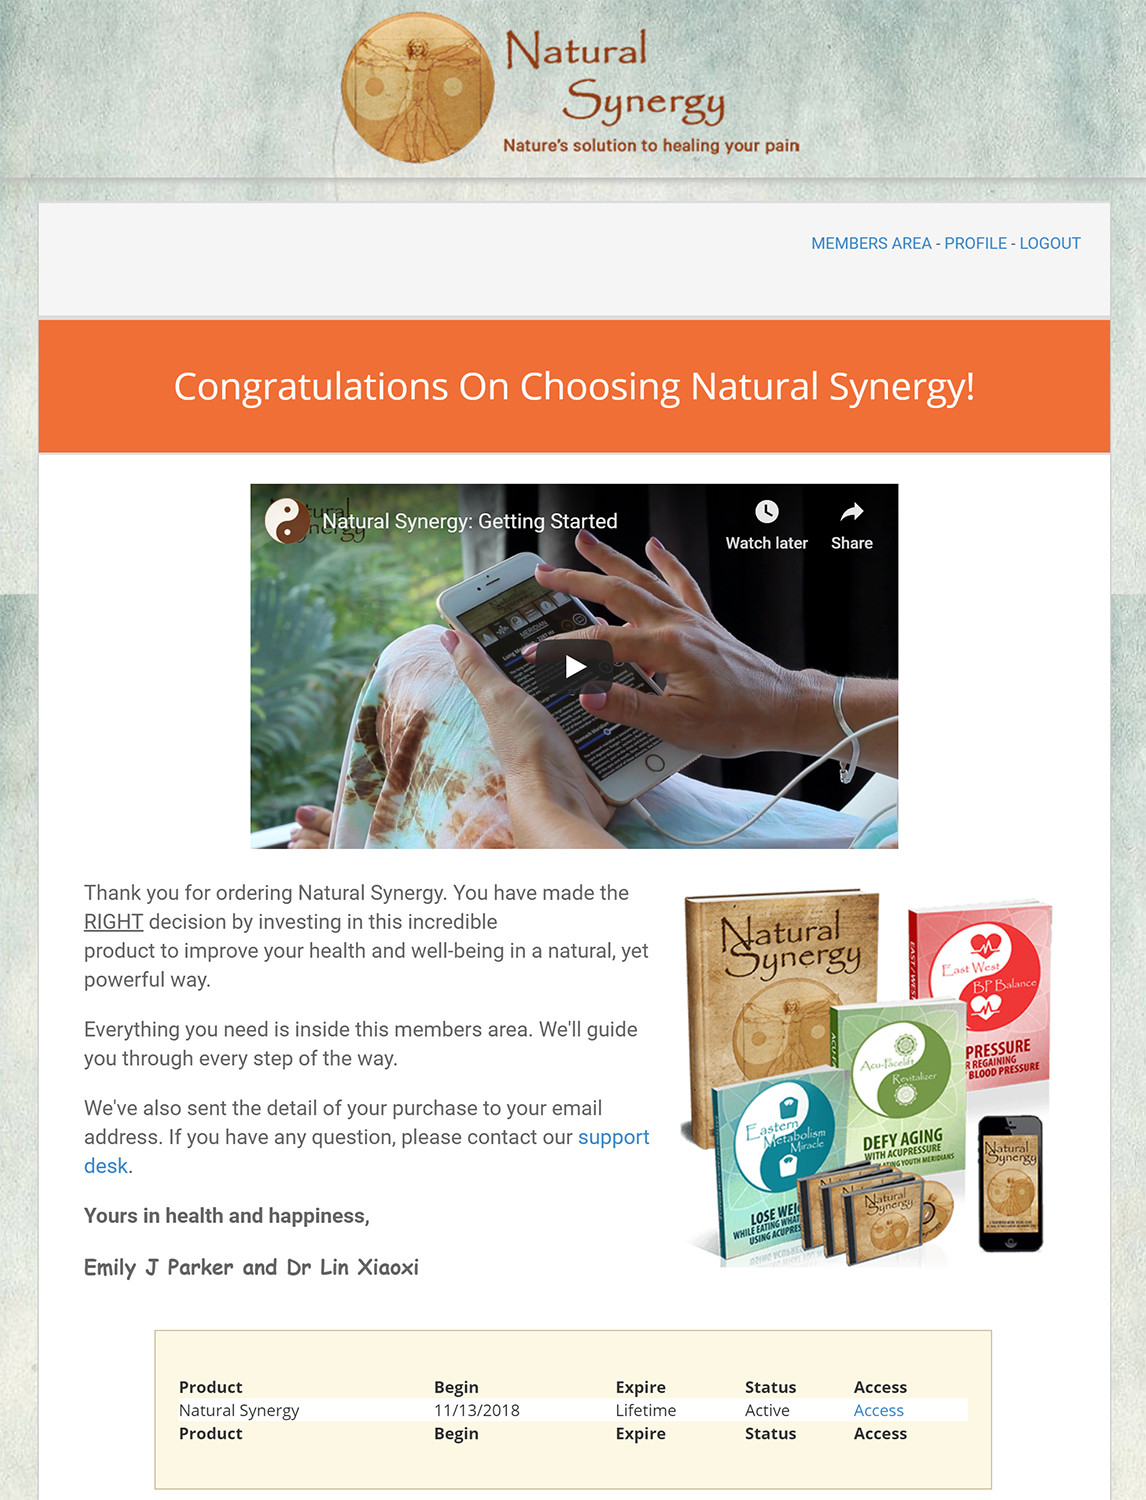 Emily J Park's Natural Synergy Download Page